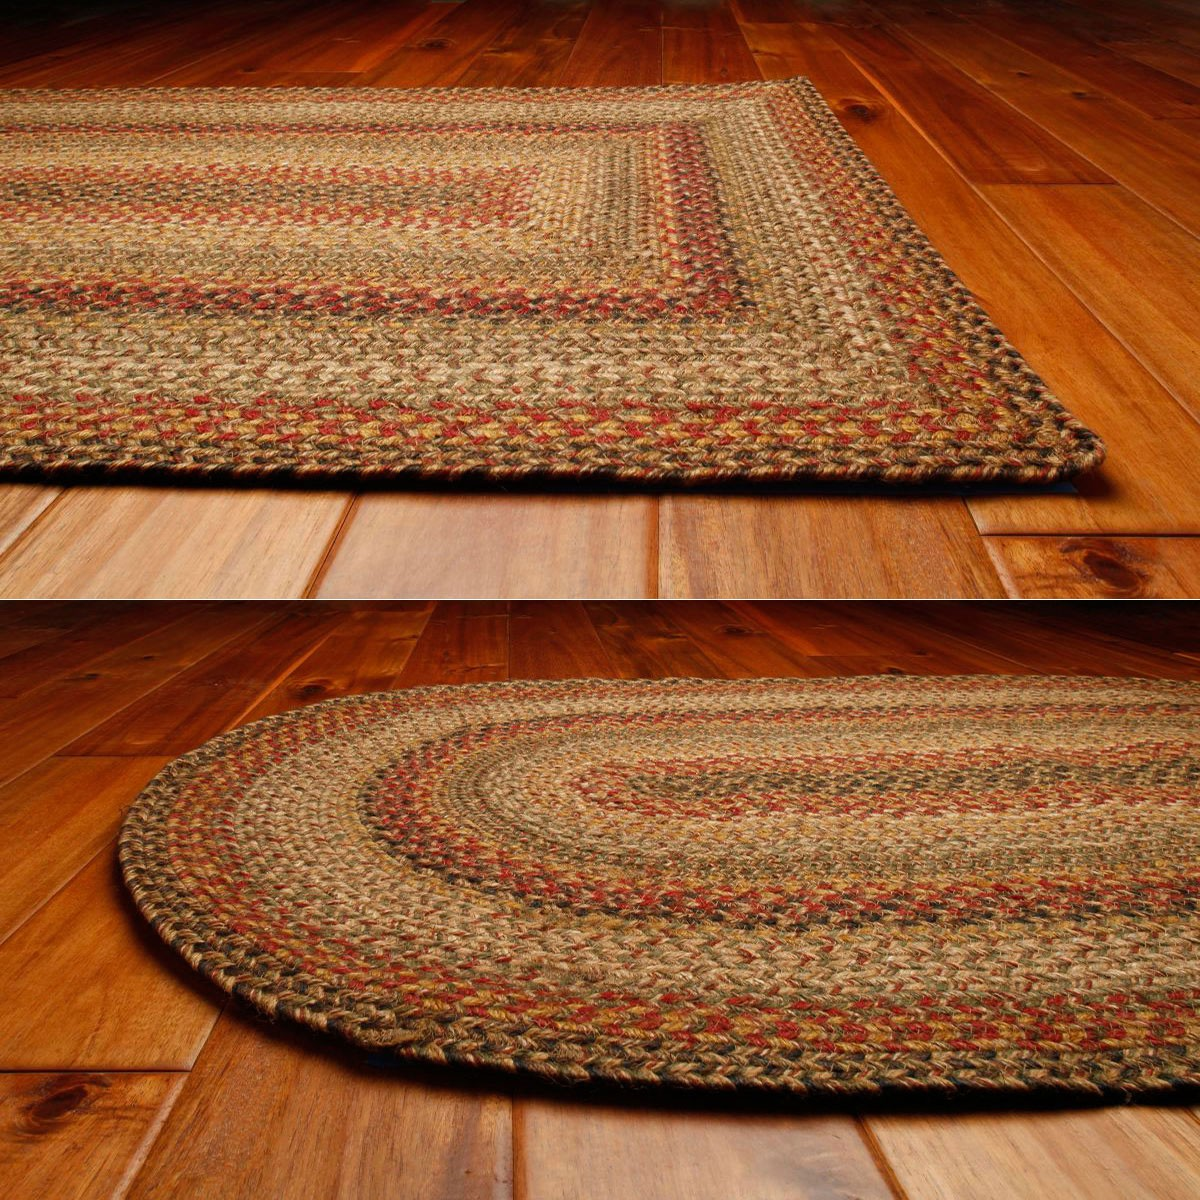 Kingston Jute Braided Rugs in oval and rectangle options